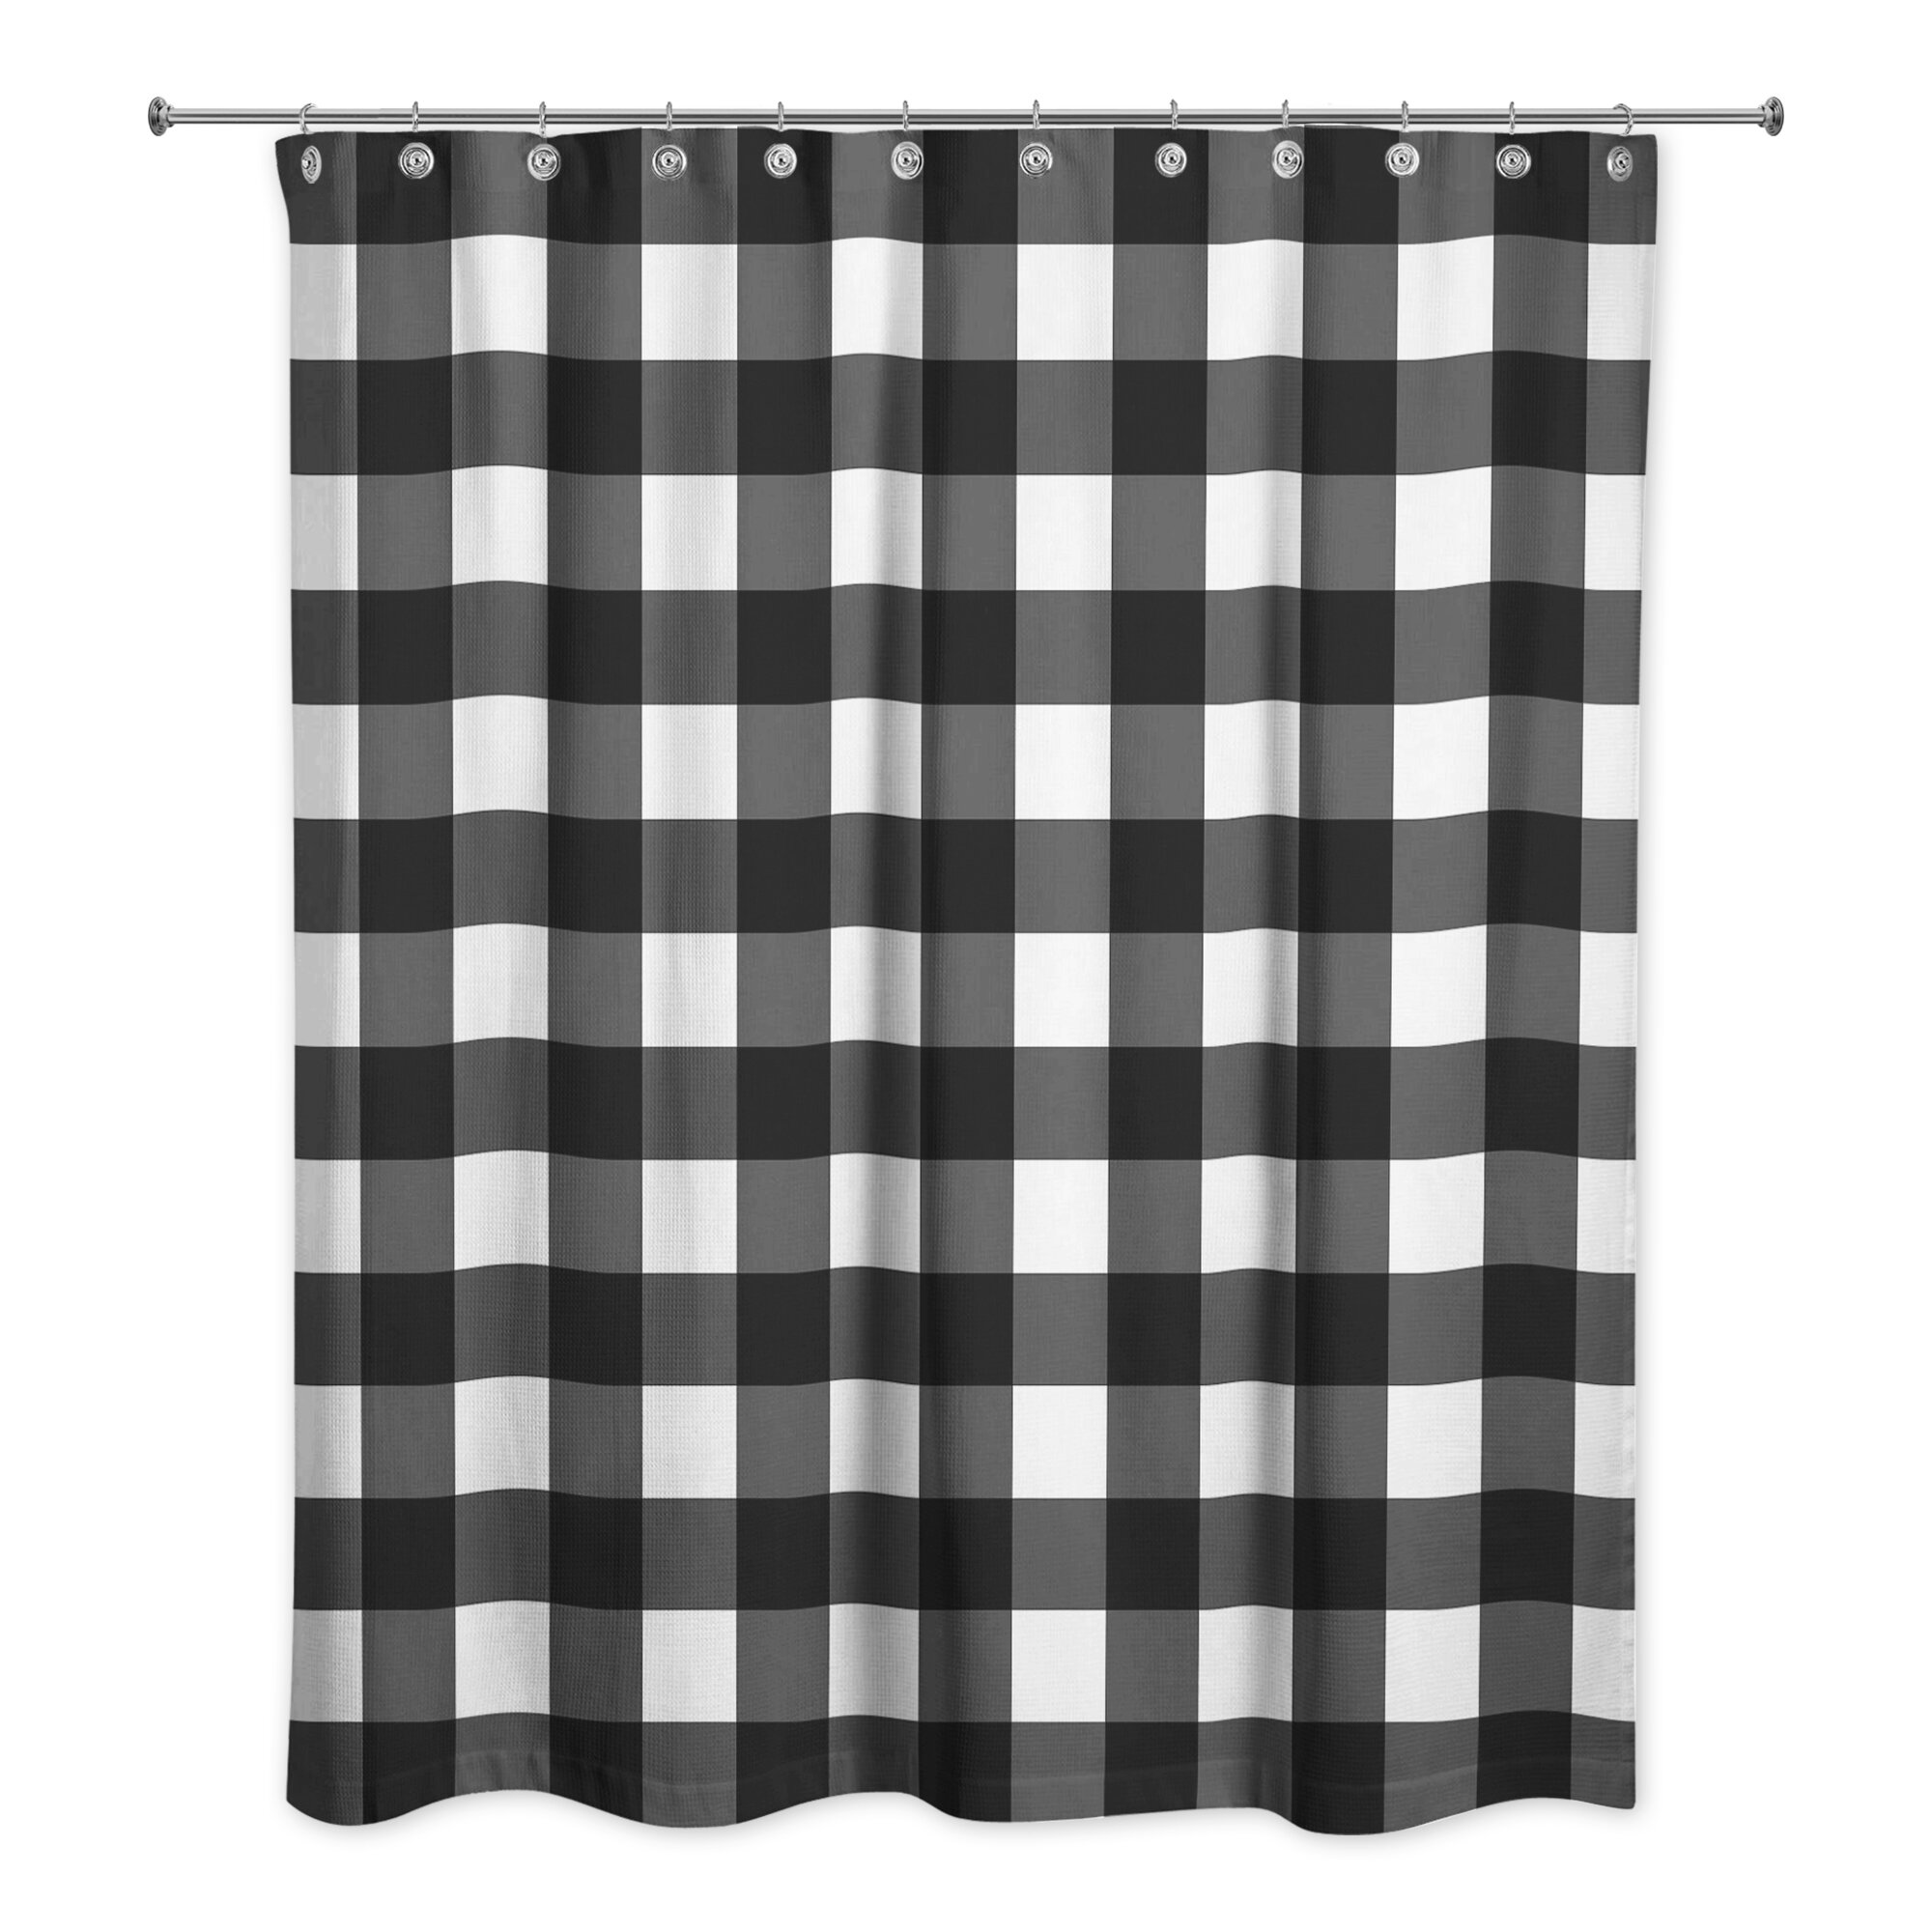 The Holiday Aisle Cornelius Buffalo Check Shower Curtain